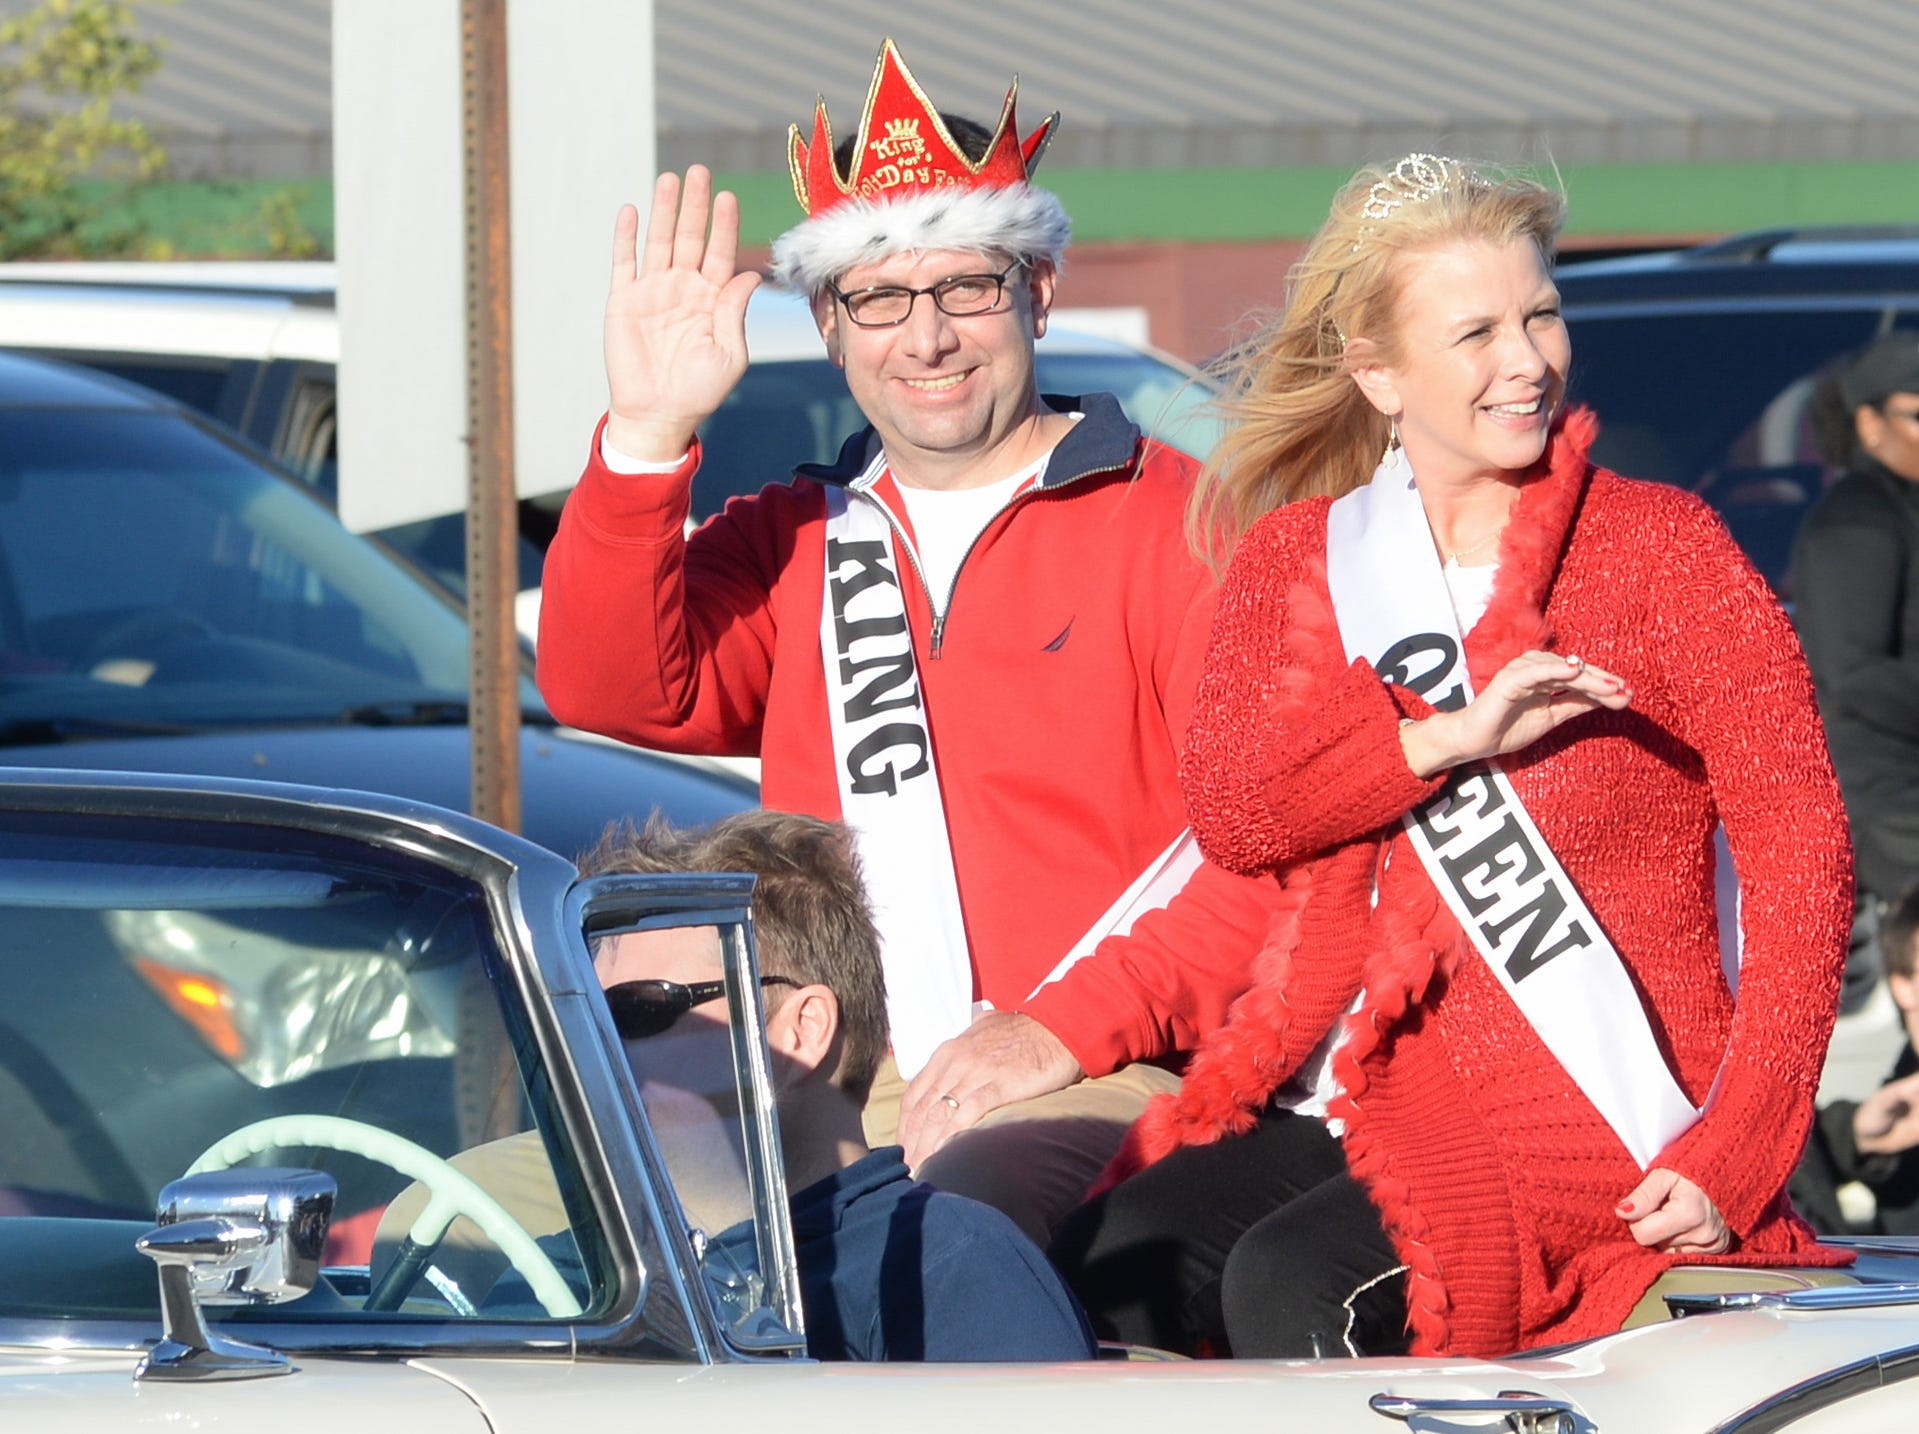 2018 HolidayFest King and Queen Tommy and Rachel McAuley participate in the Hendersonville Christmas Parade on Sunday, Dec. 2.